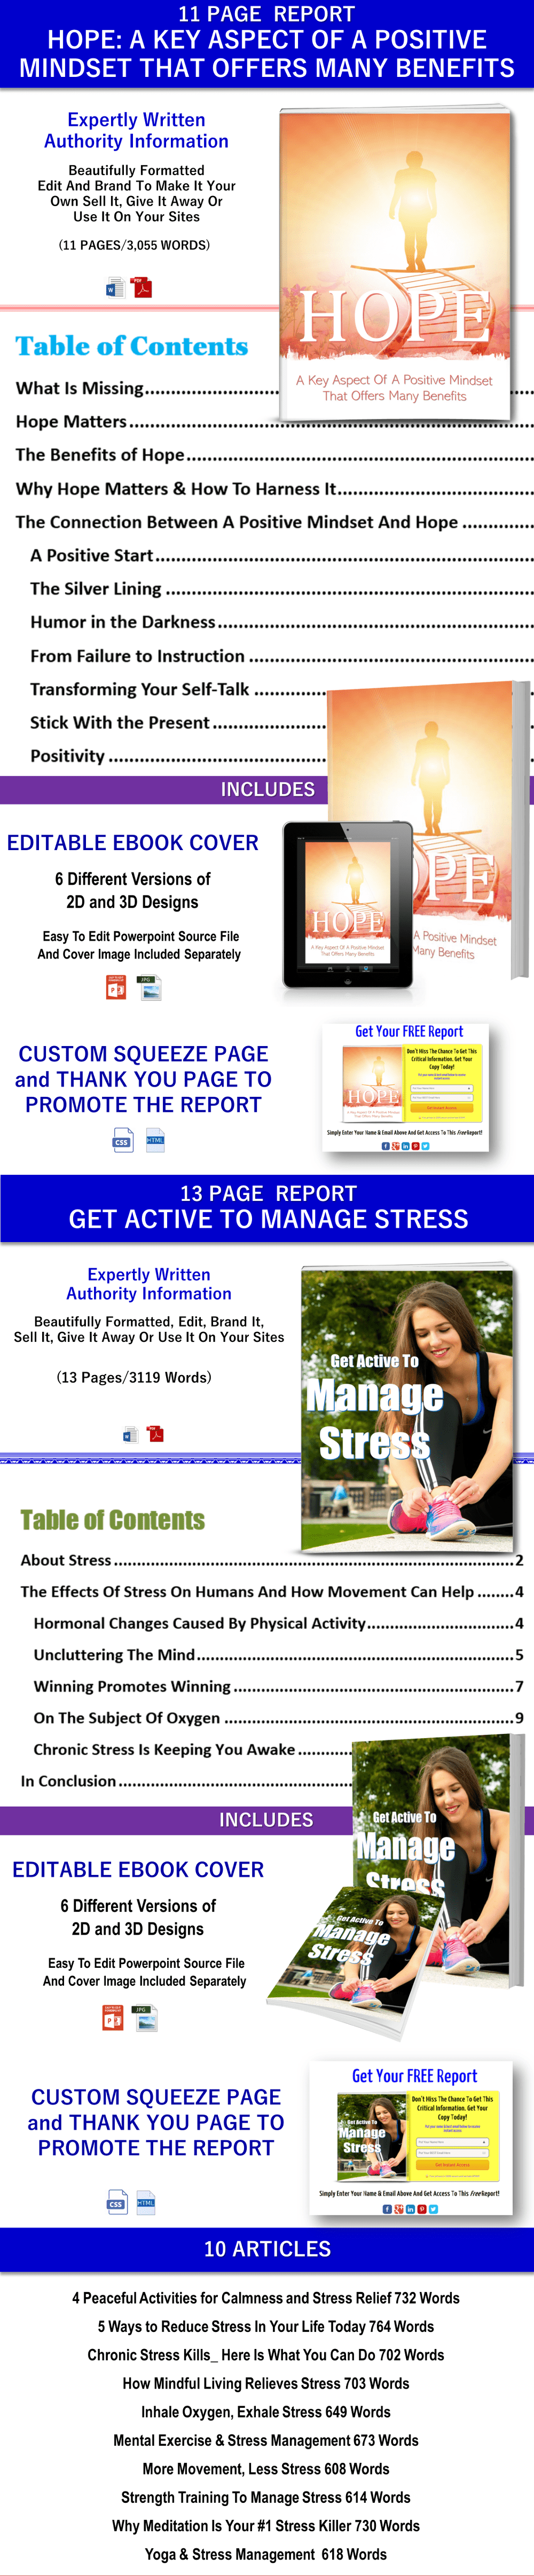 winning attitude report, self reliant reportm articles plr